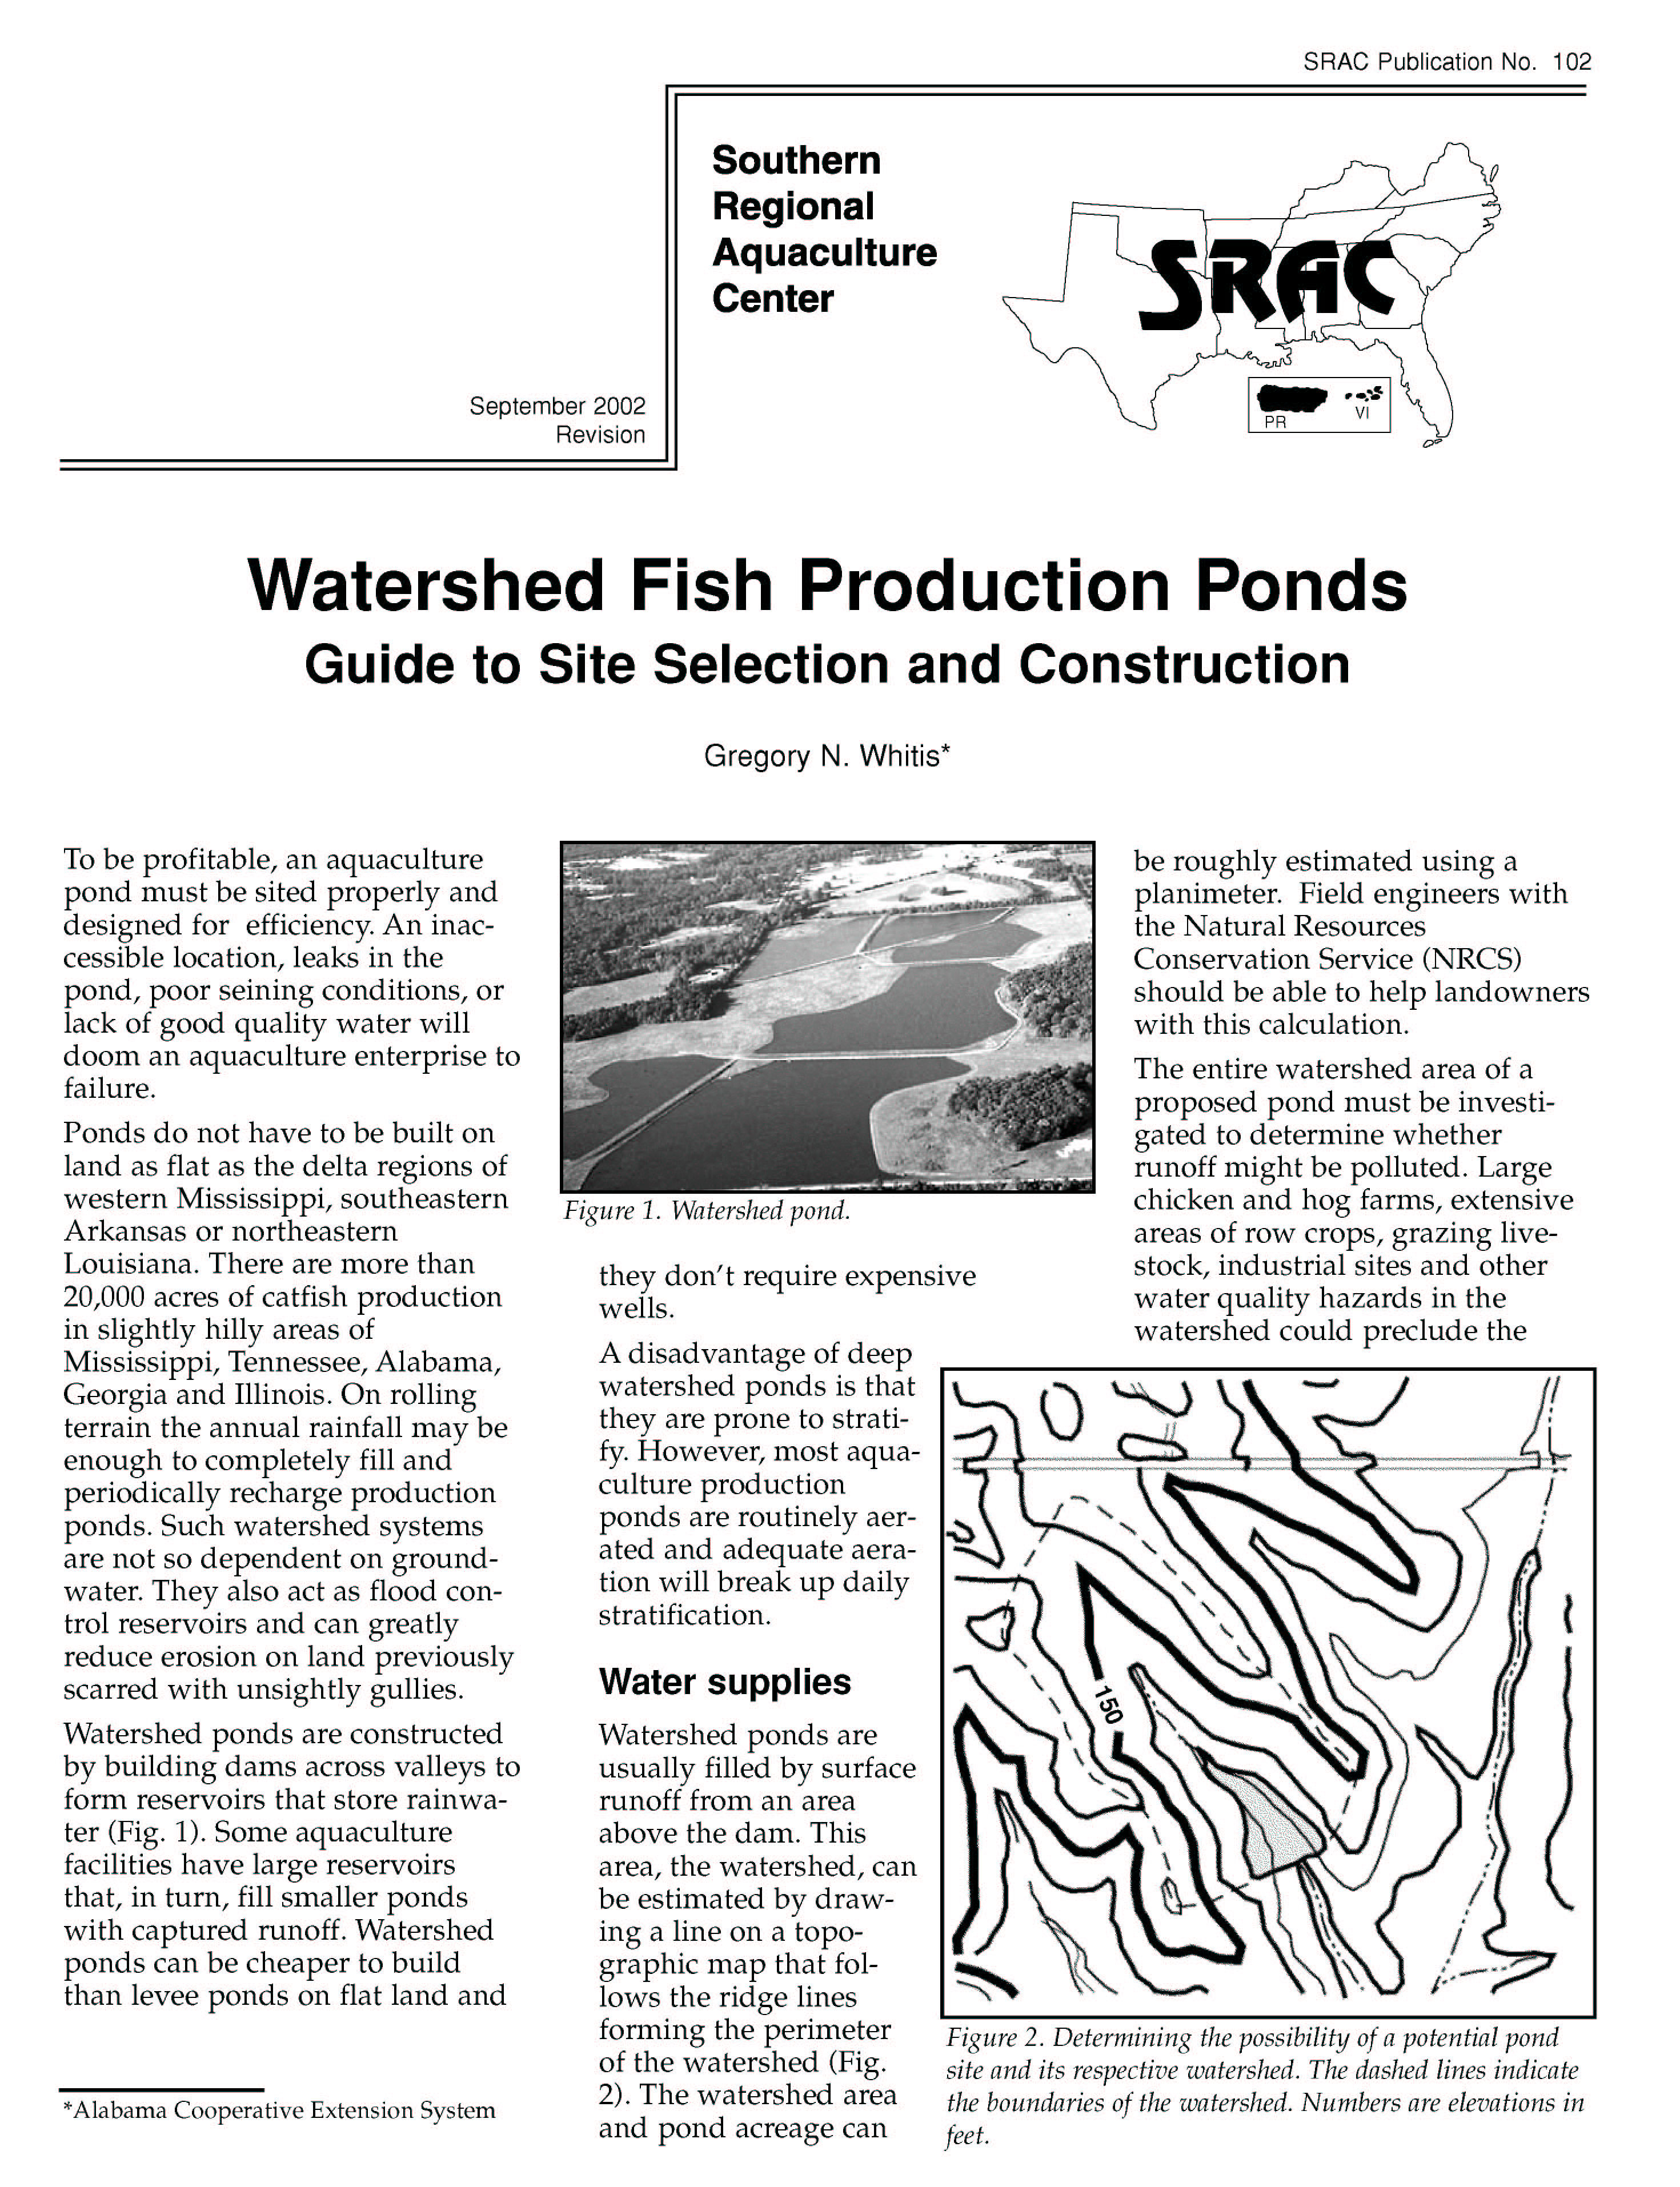 Watershed Fish Production Ponds: Guide to Site Selection and Construction